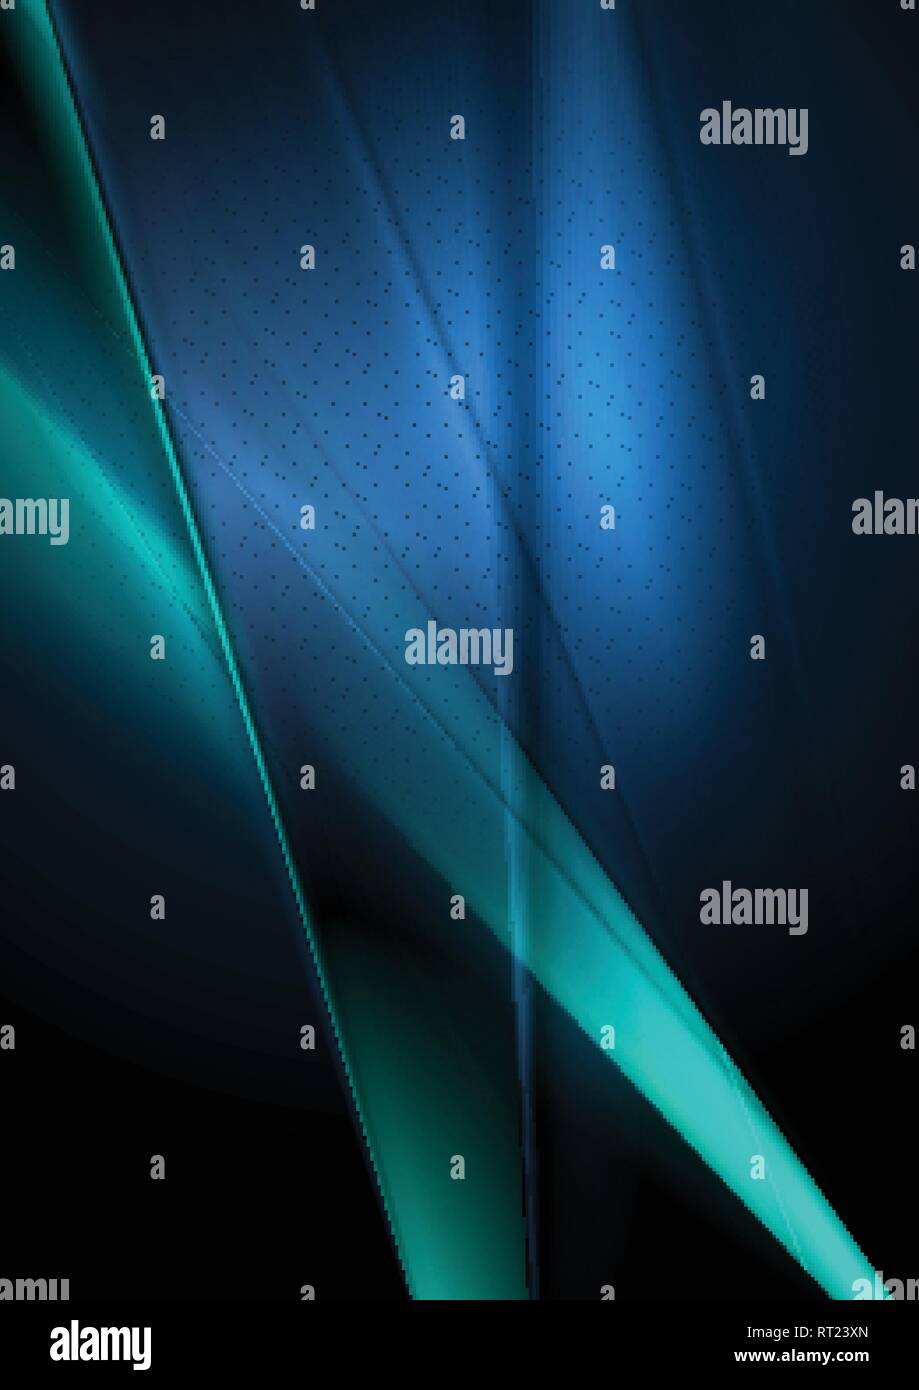 Dark deep blue abstract shiny blurred background. Vector design - Stock Vector